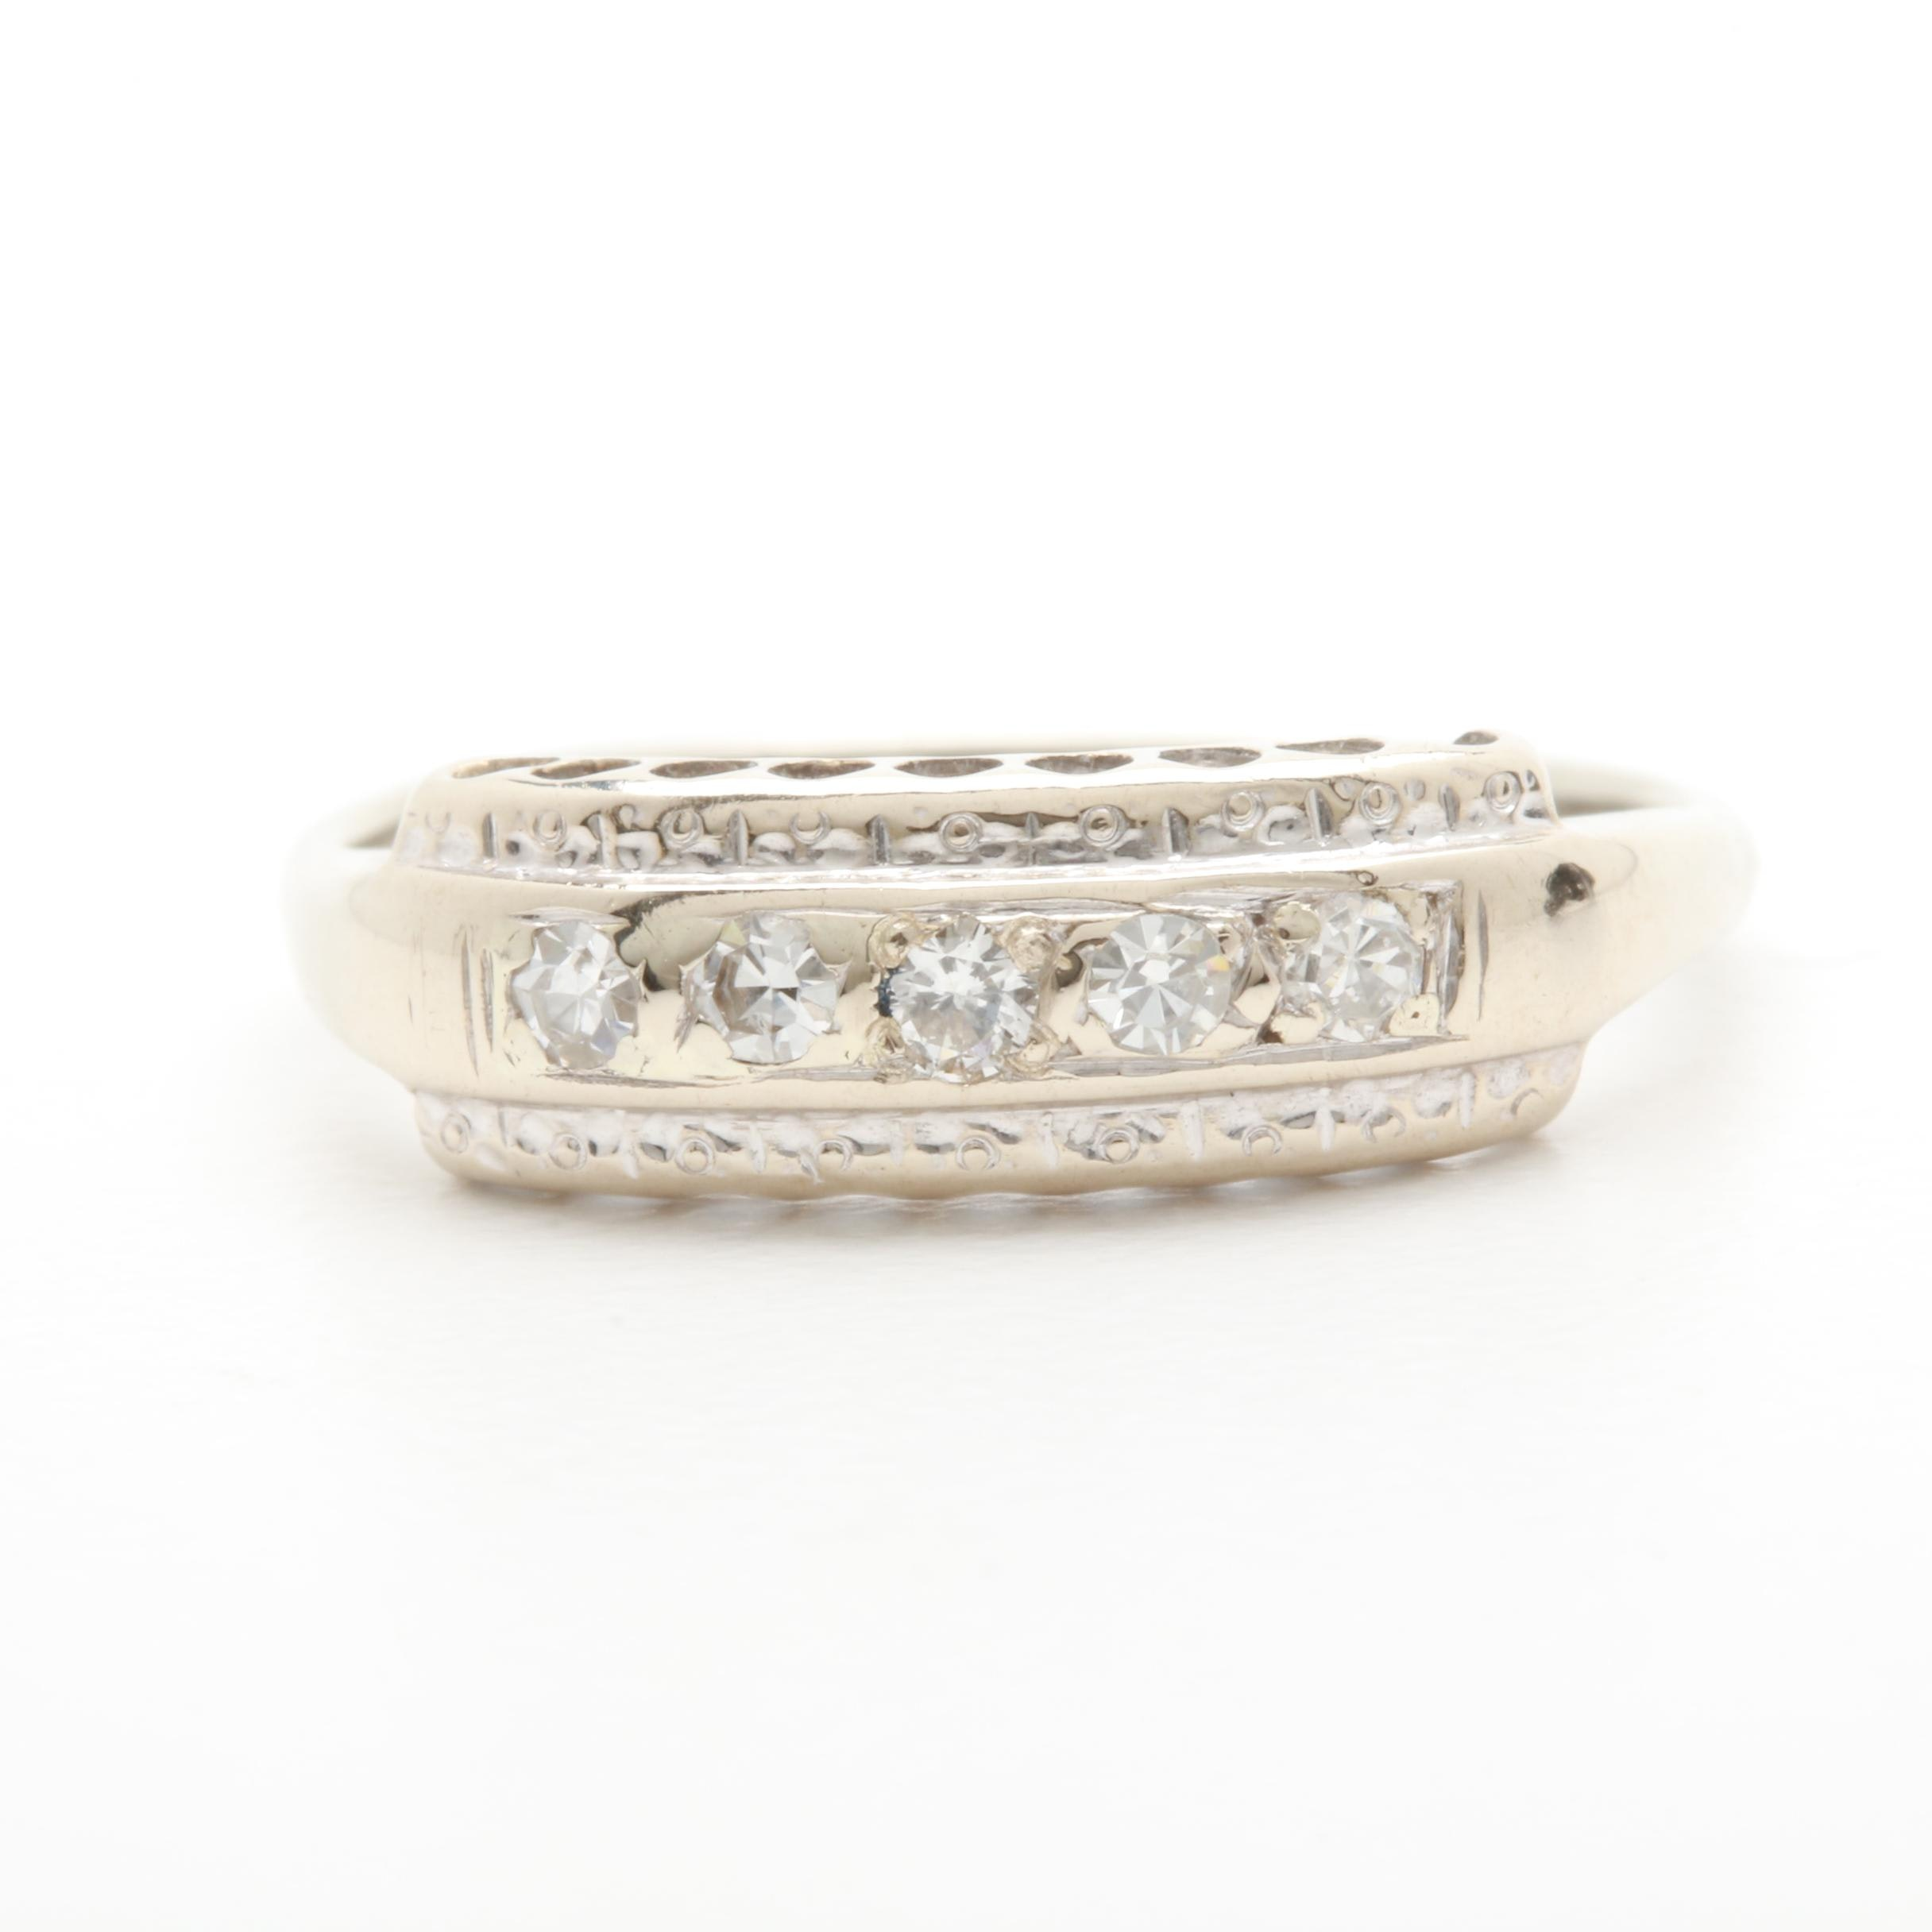 Vintage 1930s 14K White Gold Diamond Ring with 18K White Gold Accent